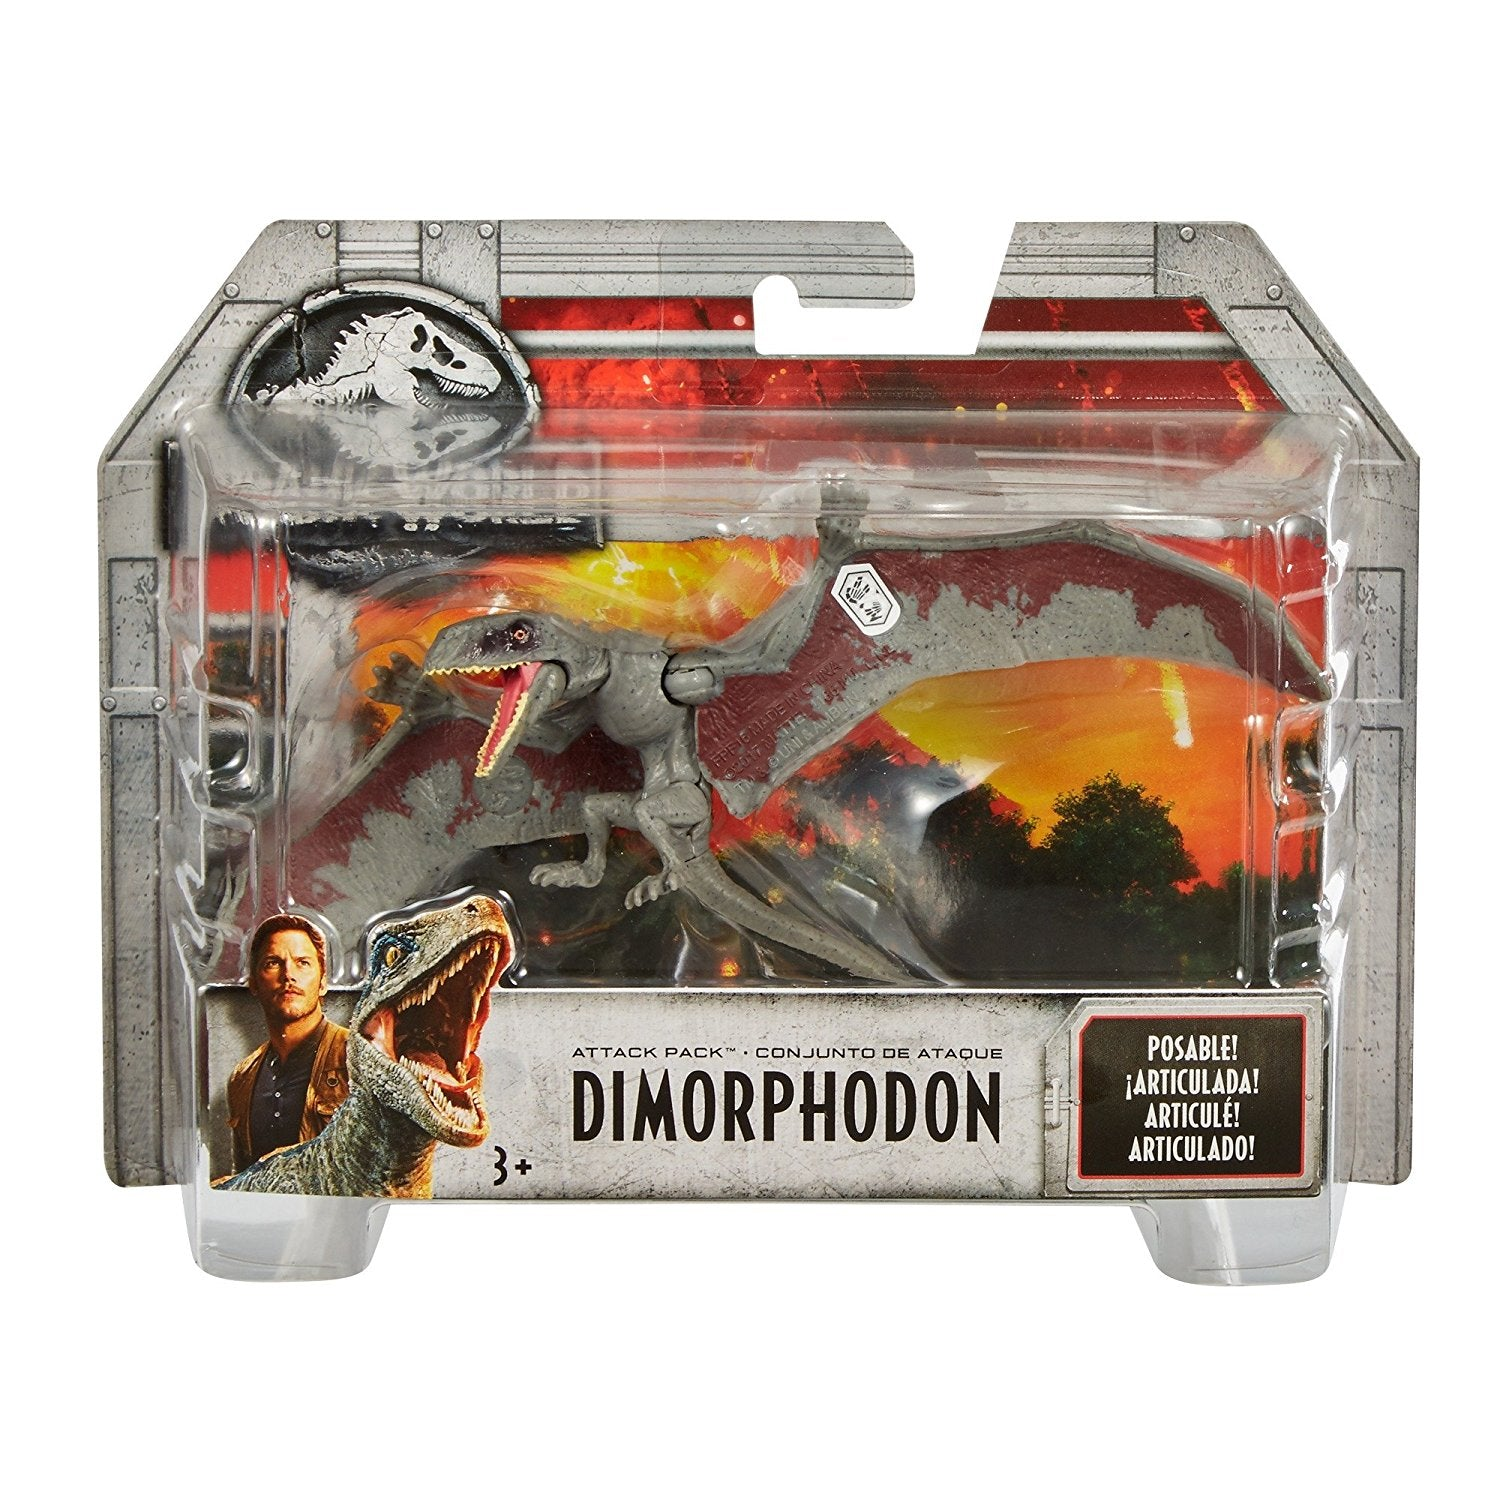 Dimorphodon Jurassic World Attack Pack Figure